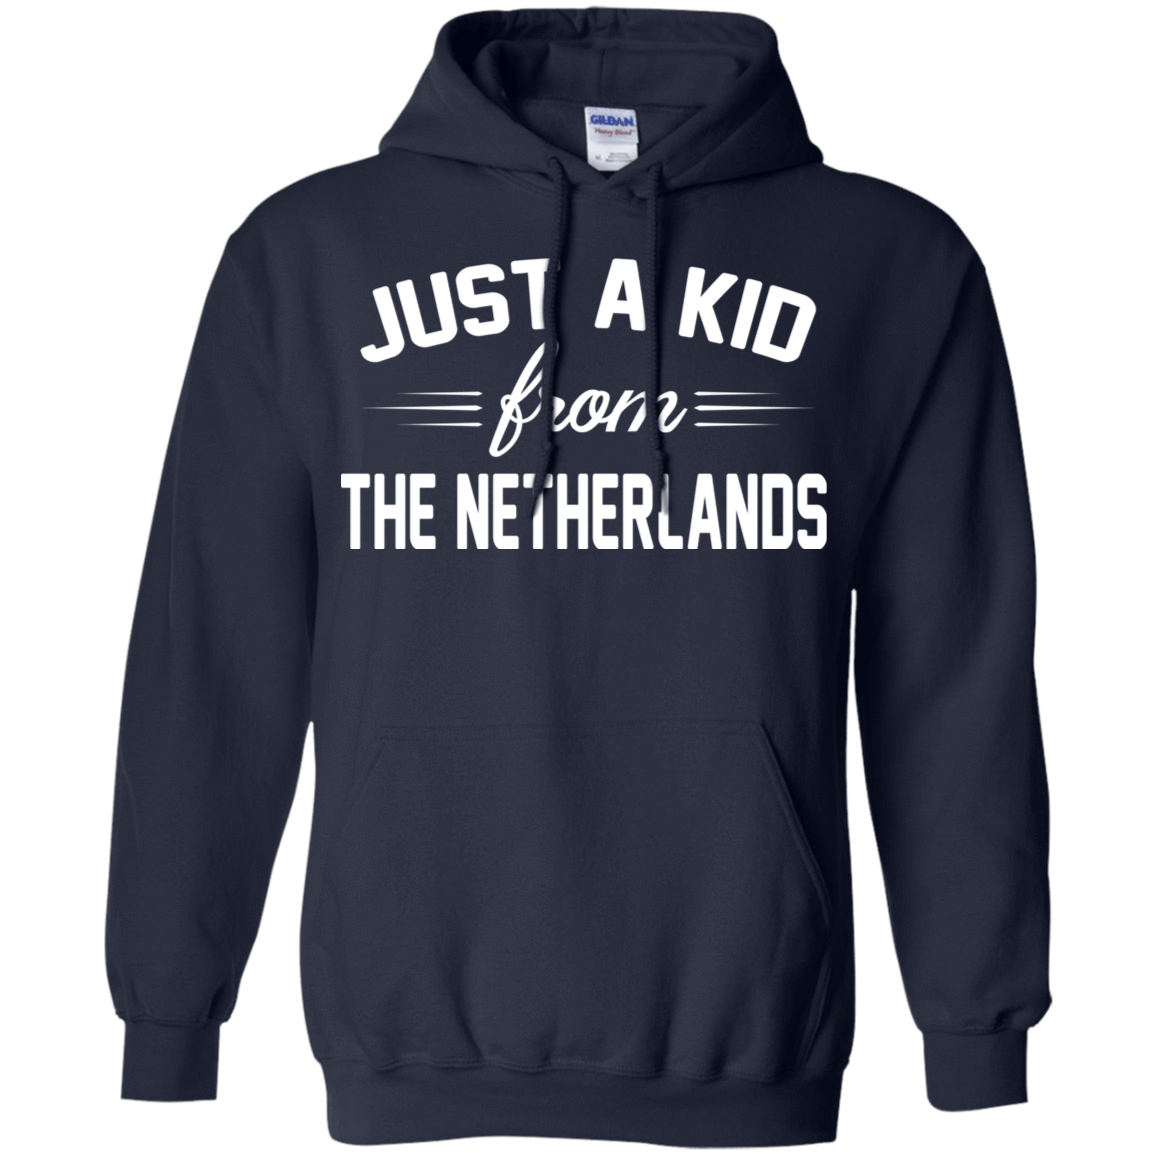 Just a Kid Store | Netherlands T-Shirts, Hoodie, Tank 541-4742-72090841-23135 - Tee Ript